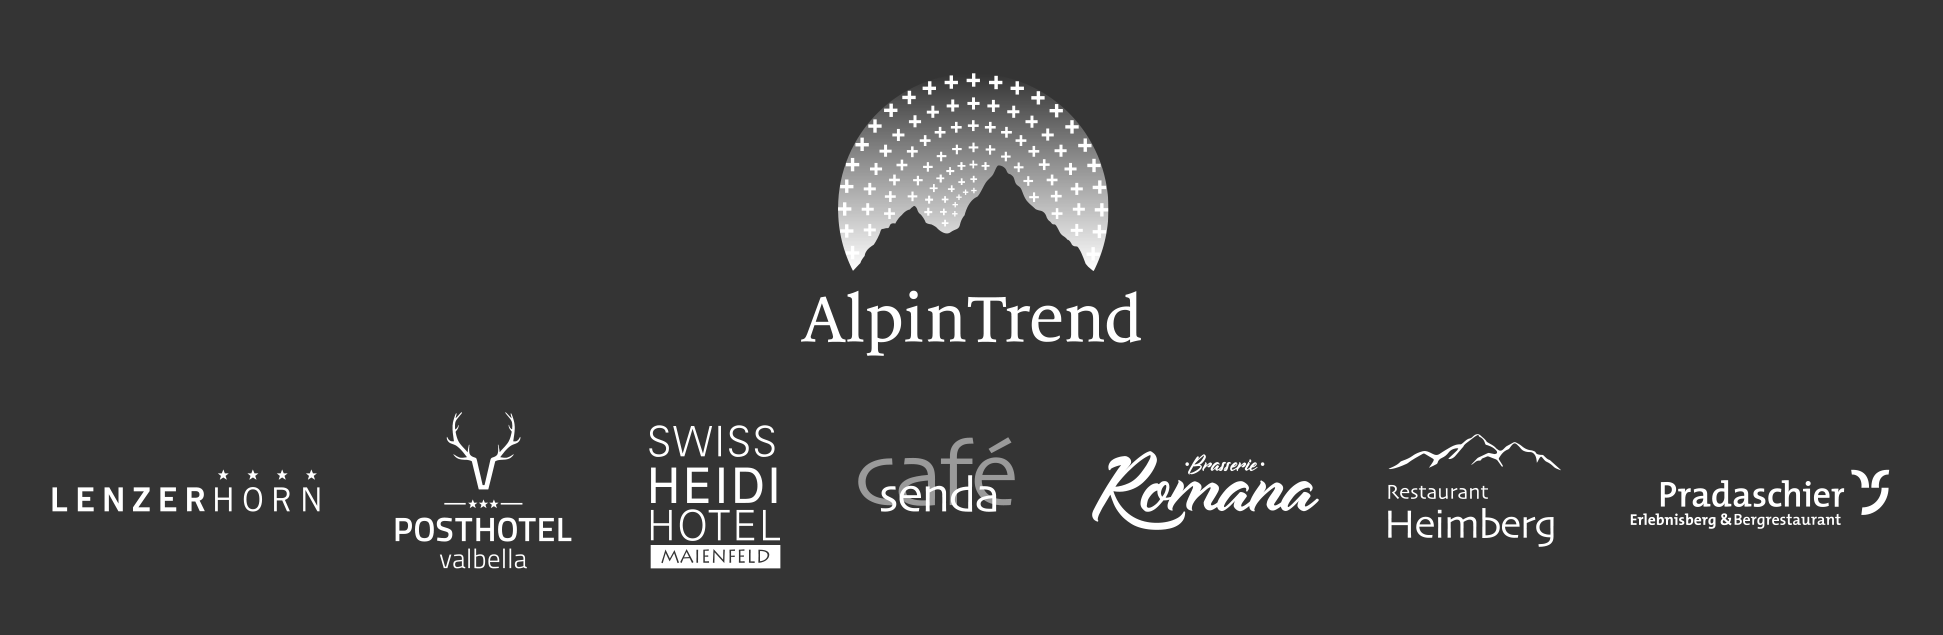 AlpinTrend Website Relaunch